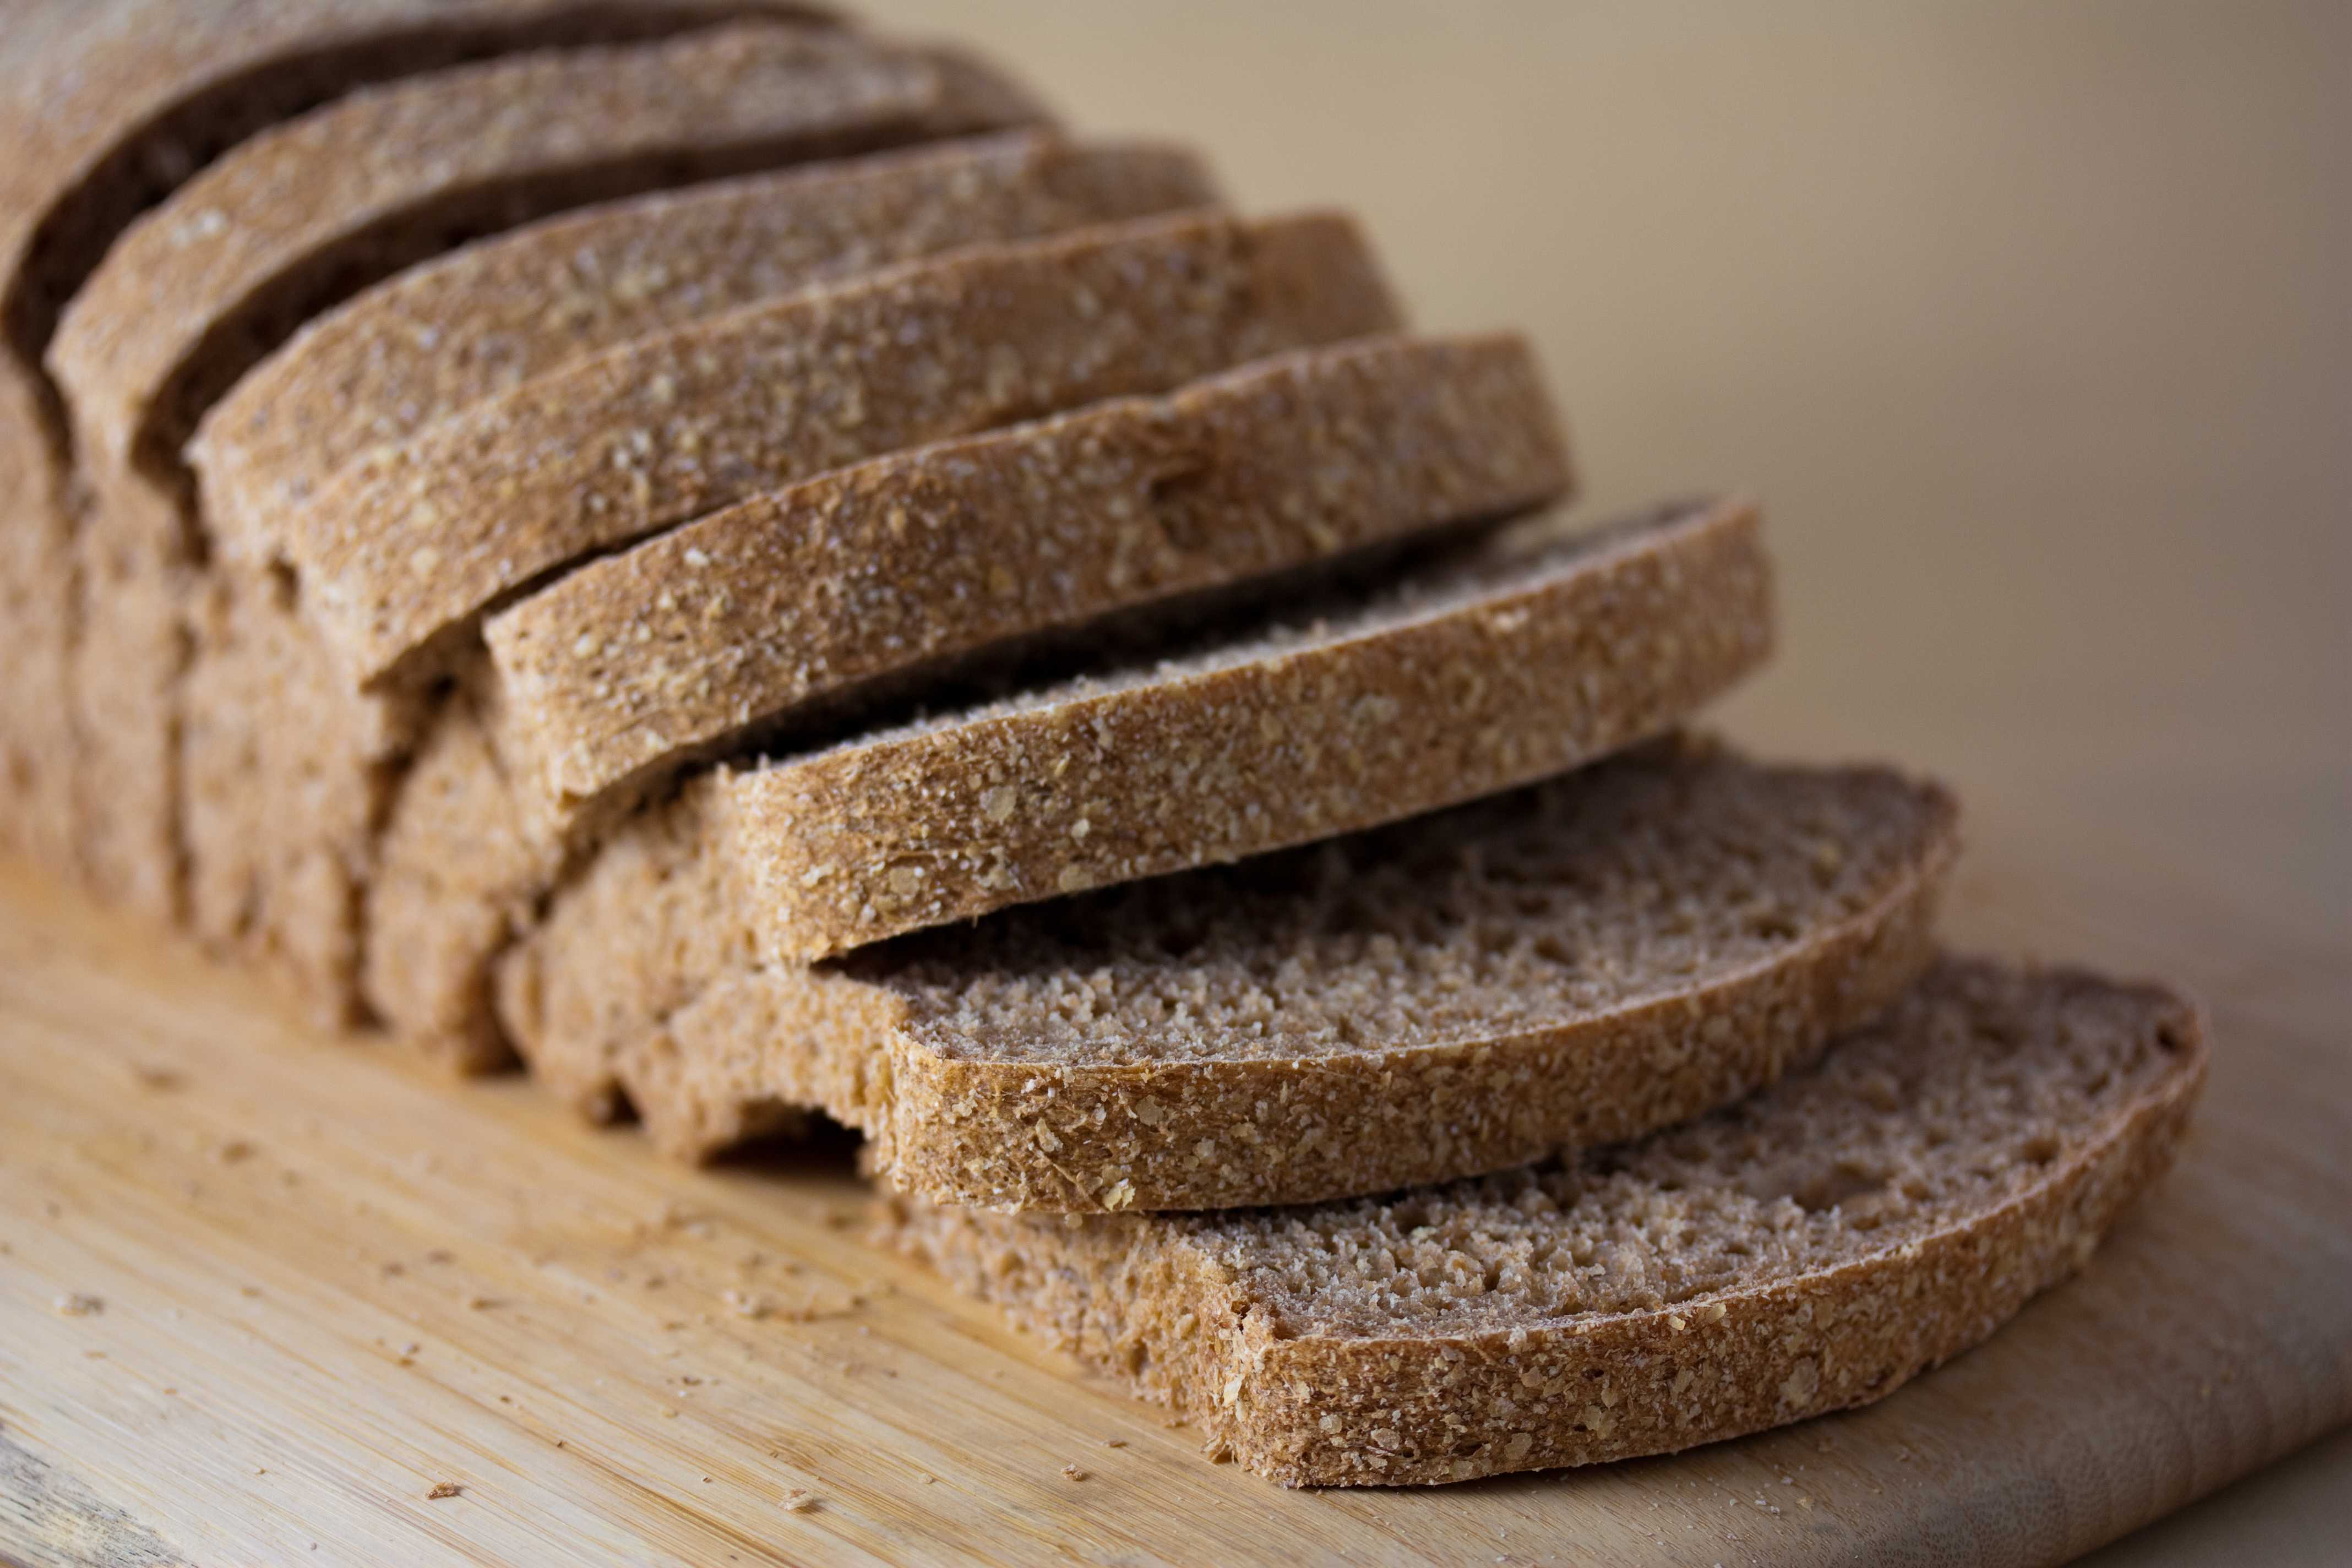 Vegan_no-knead_whole_wheat_bread_loaf,_sliced,_September_2010